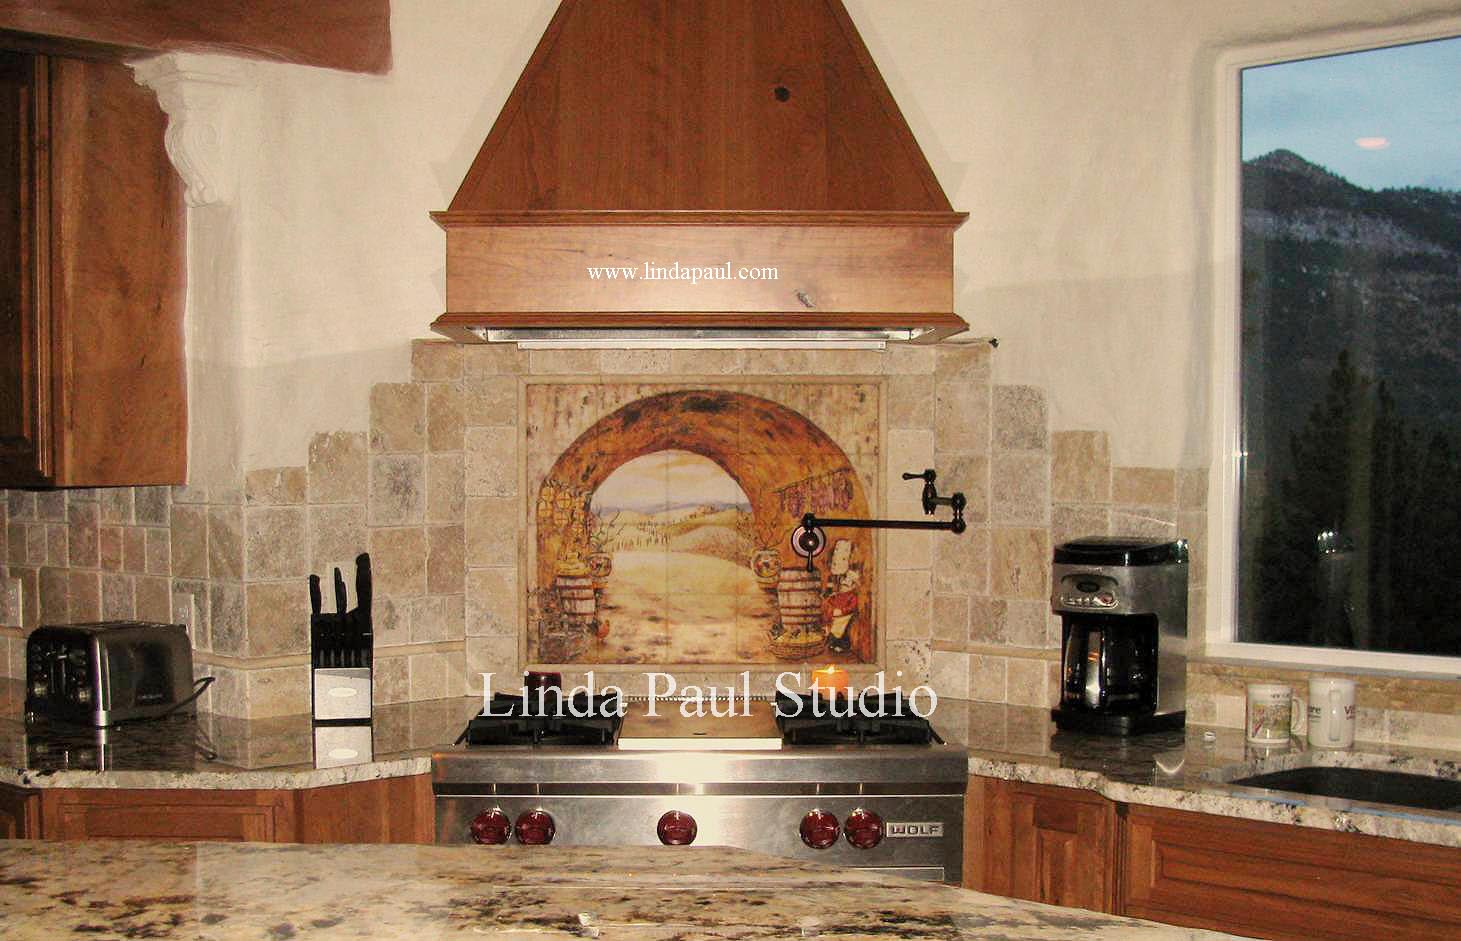 Everything Tuscany tile mural backsplash kitchen backsplash tile Everything Tuscany Tile Kitchen Backsplash Mural by artist Linda Paul